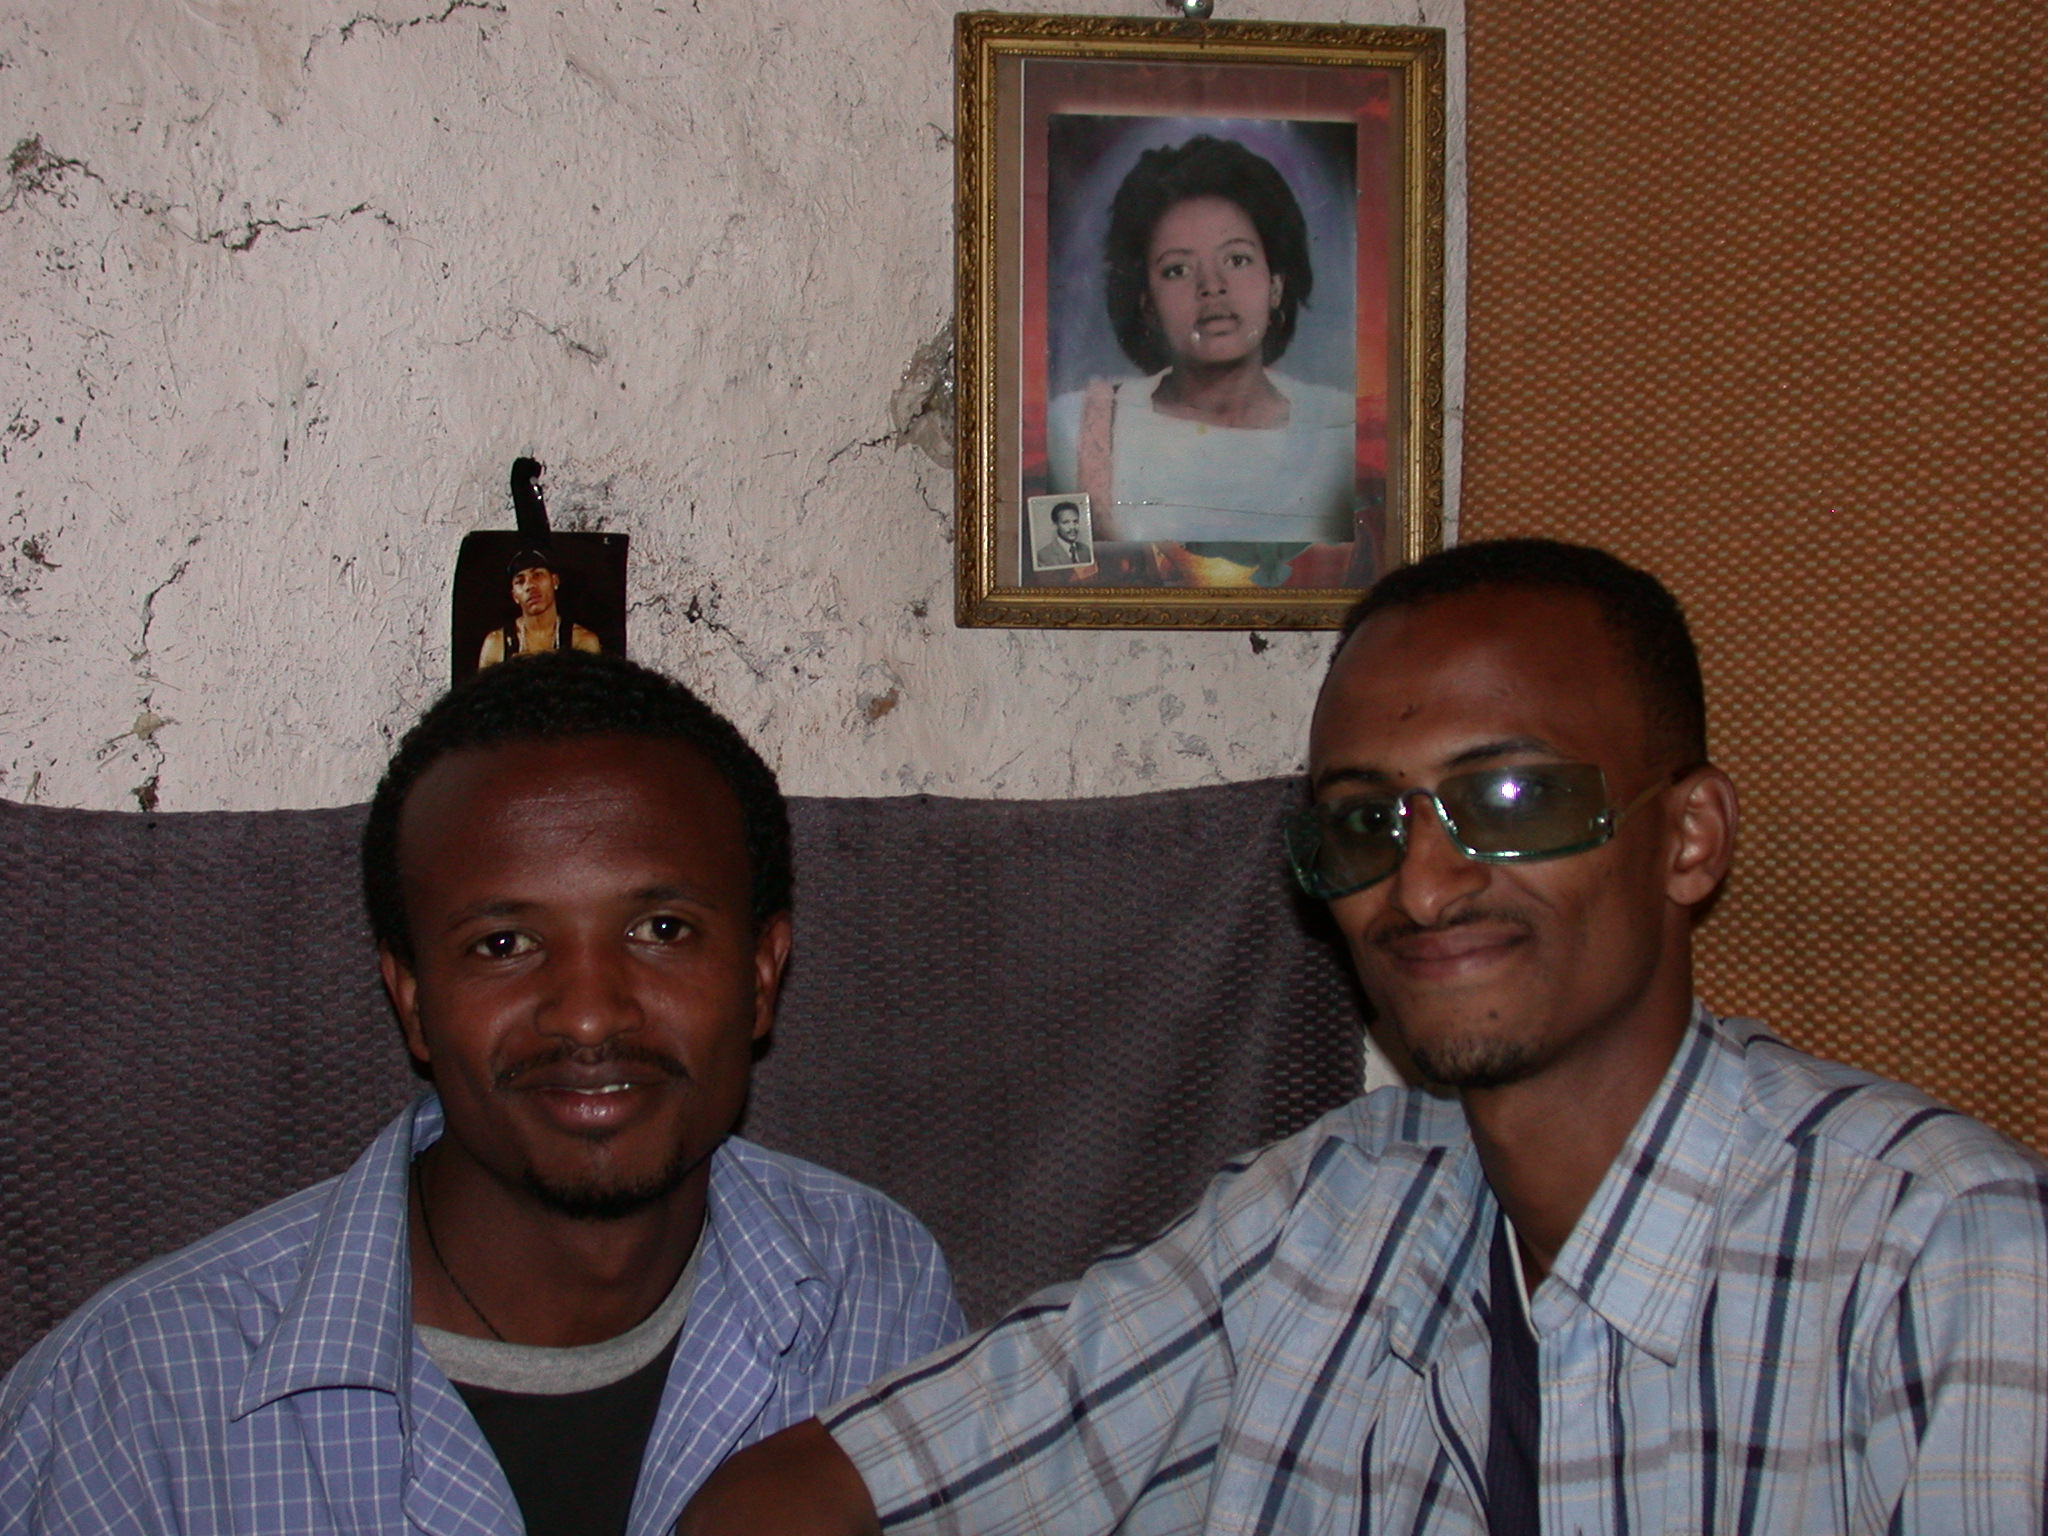 Paulos and Abdela Assiz in Front of Mother and Father Pictures at Paulos Apartment, Addis Ababa, Ethiopia